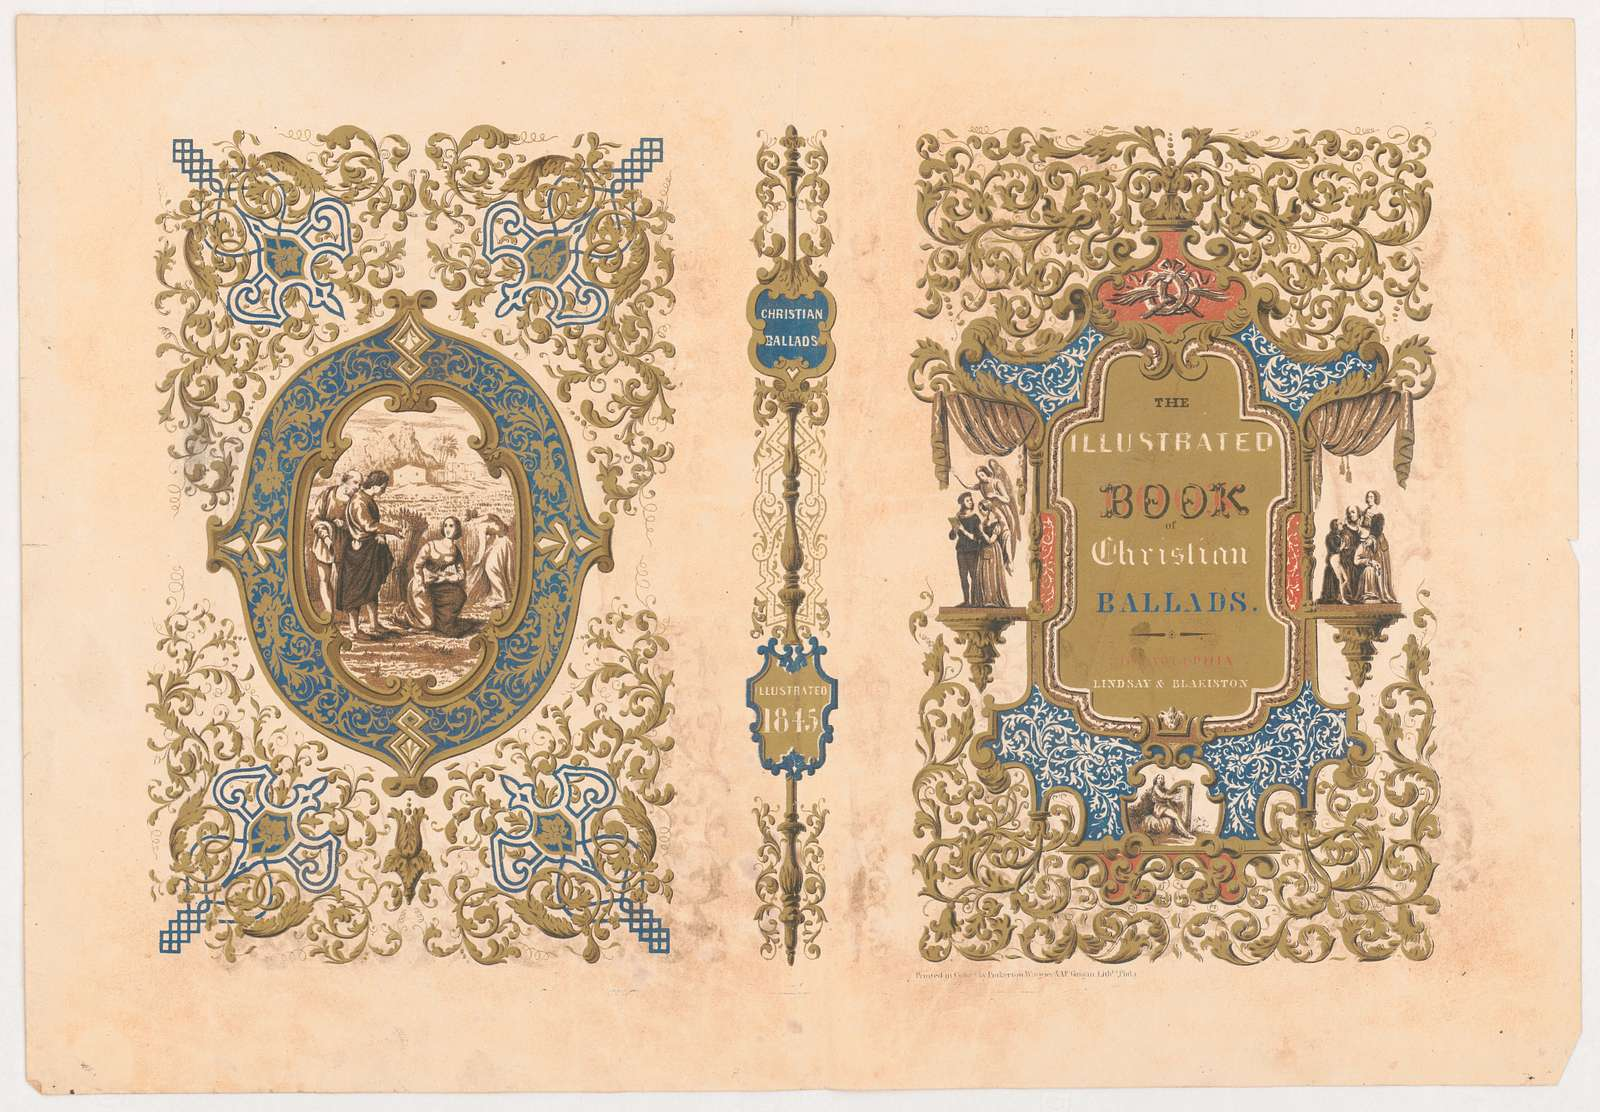 The illustrated book of Christian ballads